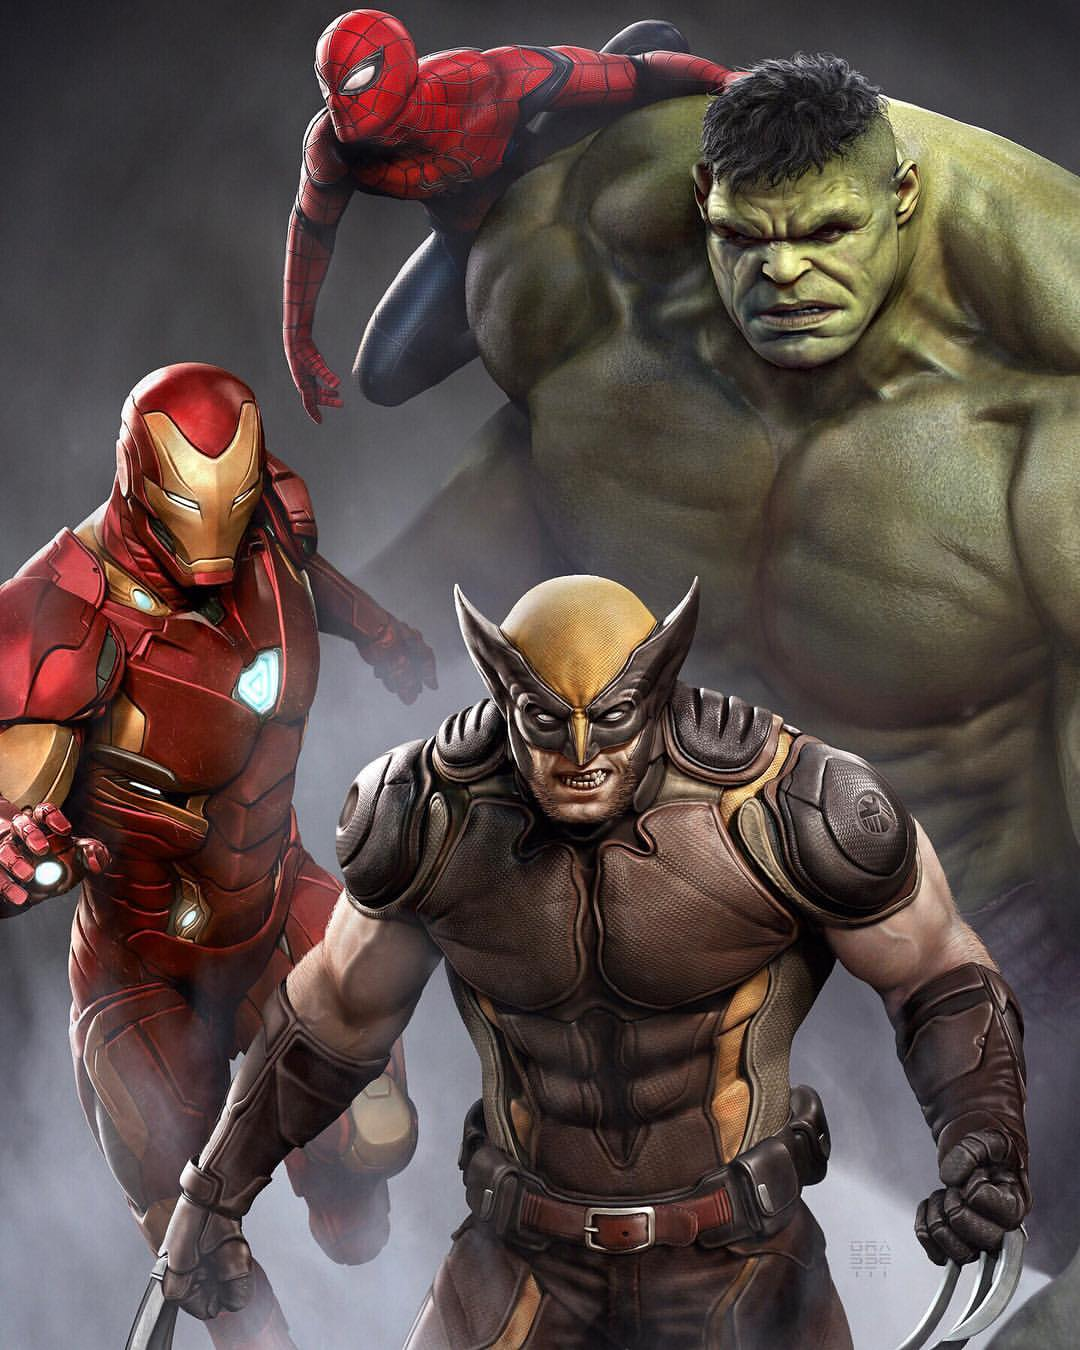 Wolverine, Venom, Omega Red and more characters in the Marvel Cinematic Universe as imagined by God of War art director Raf Grassetti.